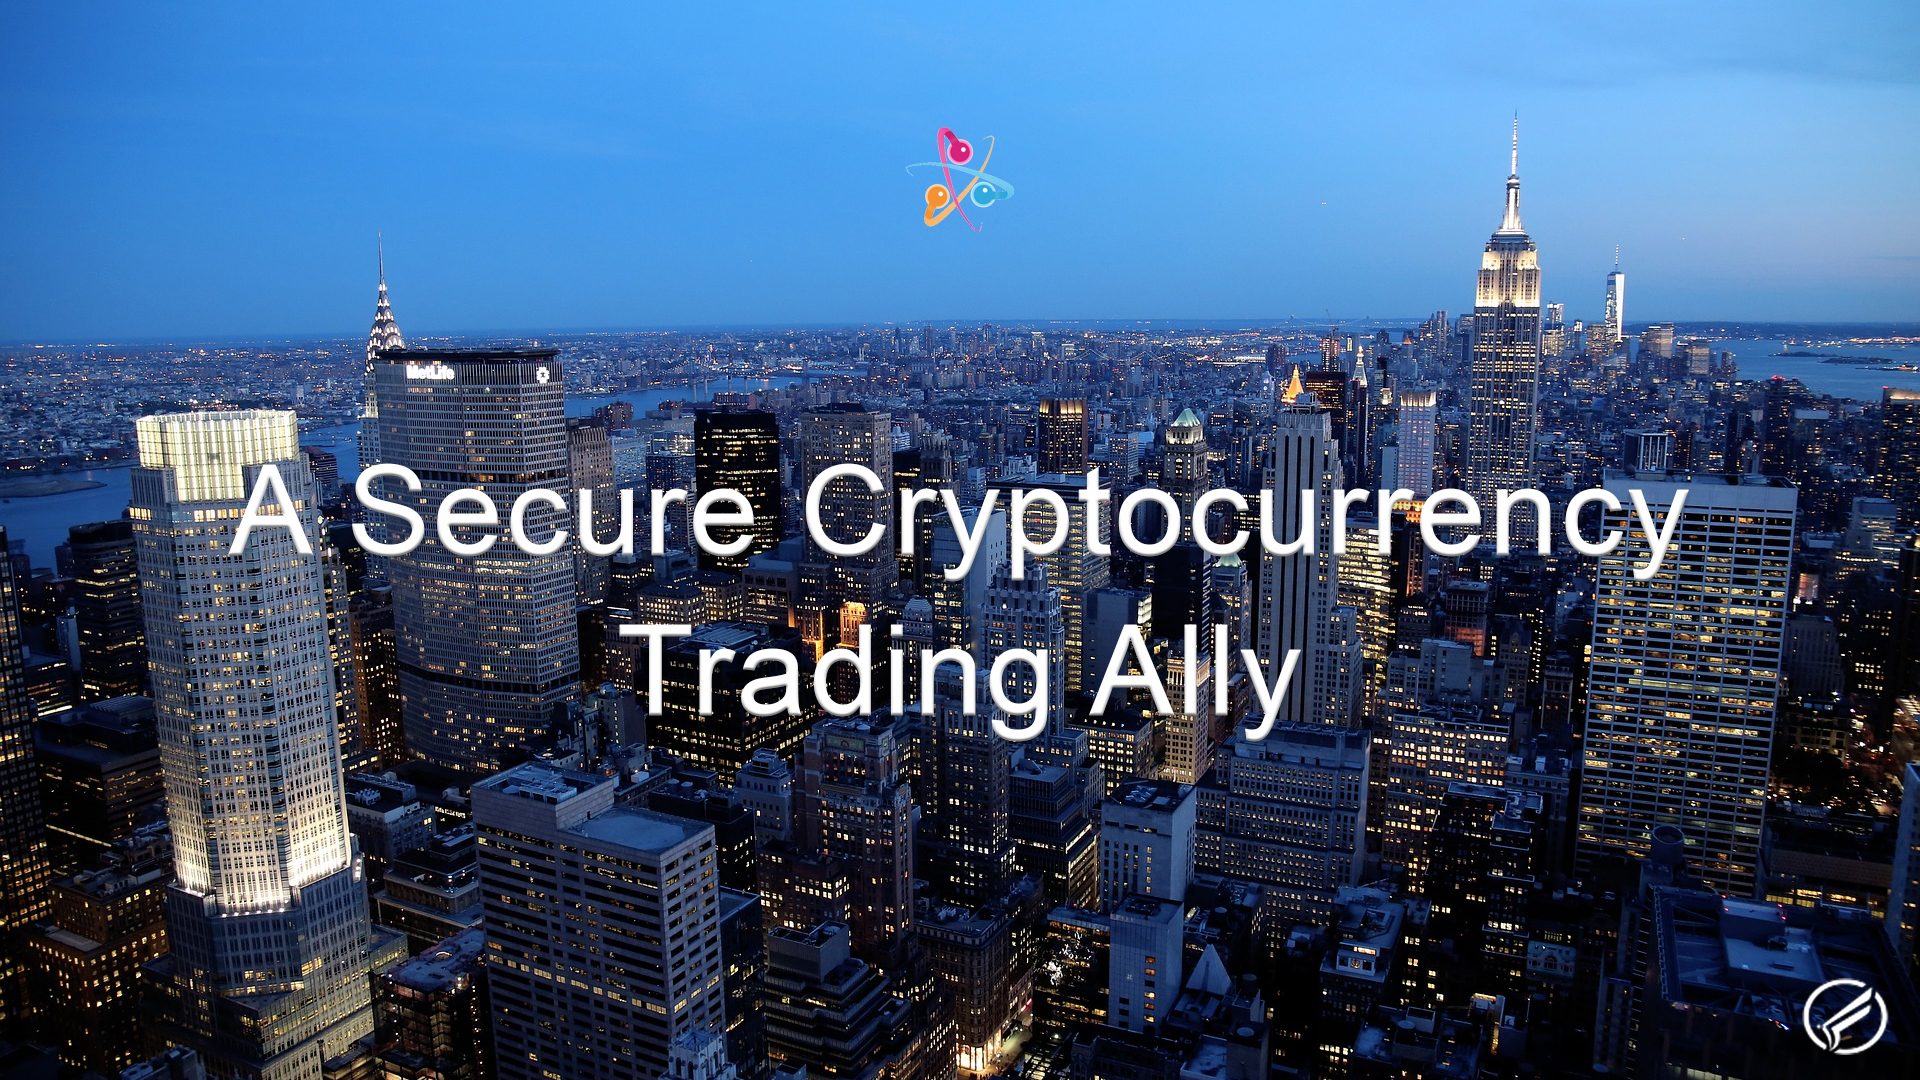 Ripa - A Secure Cryptocurrency Trading Ally